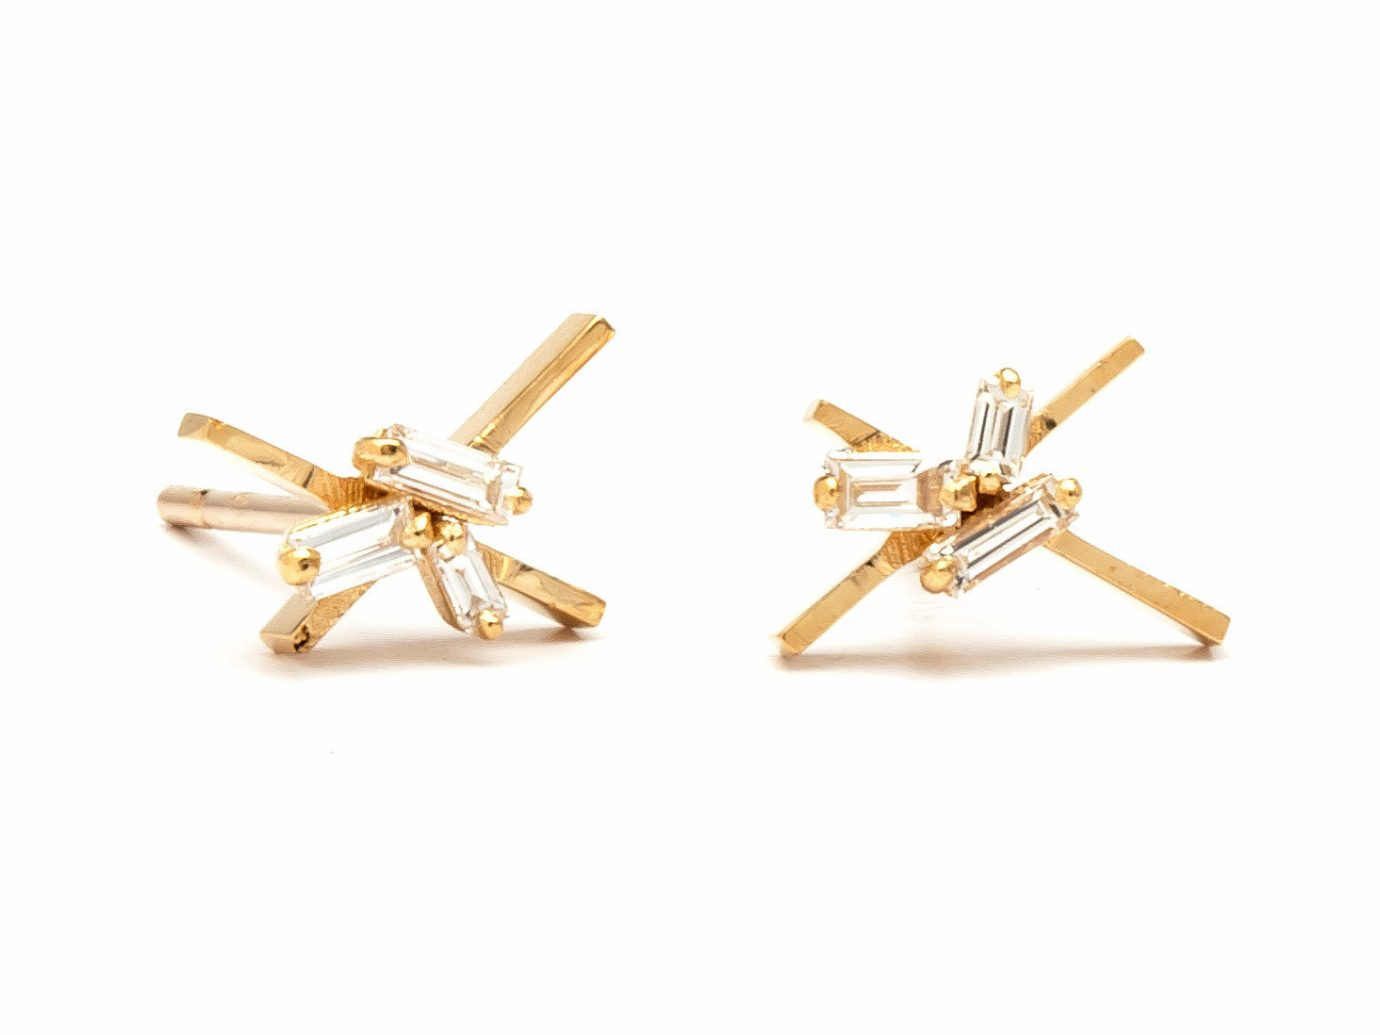 Style + Design jewellery earrings fashion accessory old body jewelry diamond cufflink material metal brass